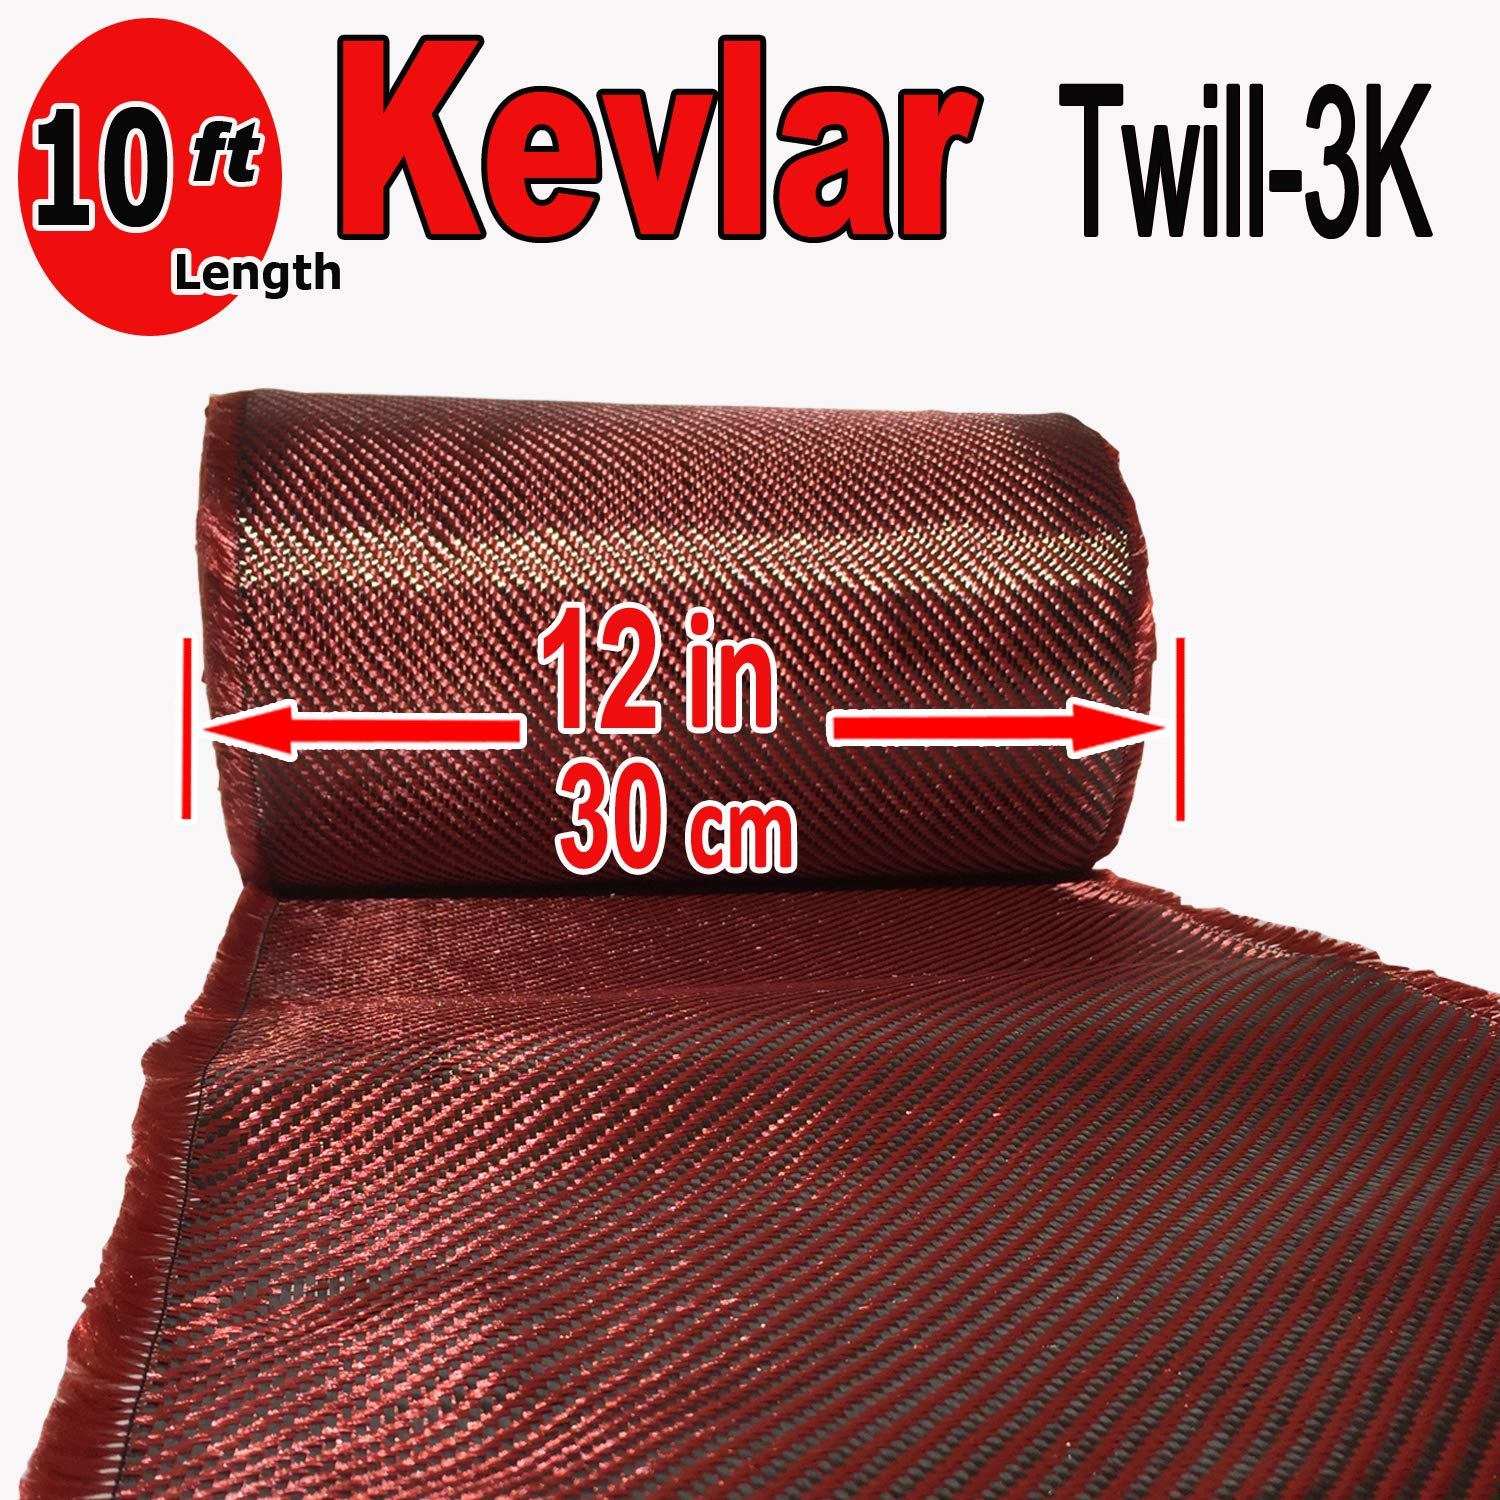 12'' x 10 FT Red - Kevlar FABRIC-2x2 Twill WEAVE-3K/220g by Unknown